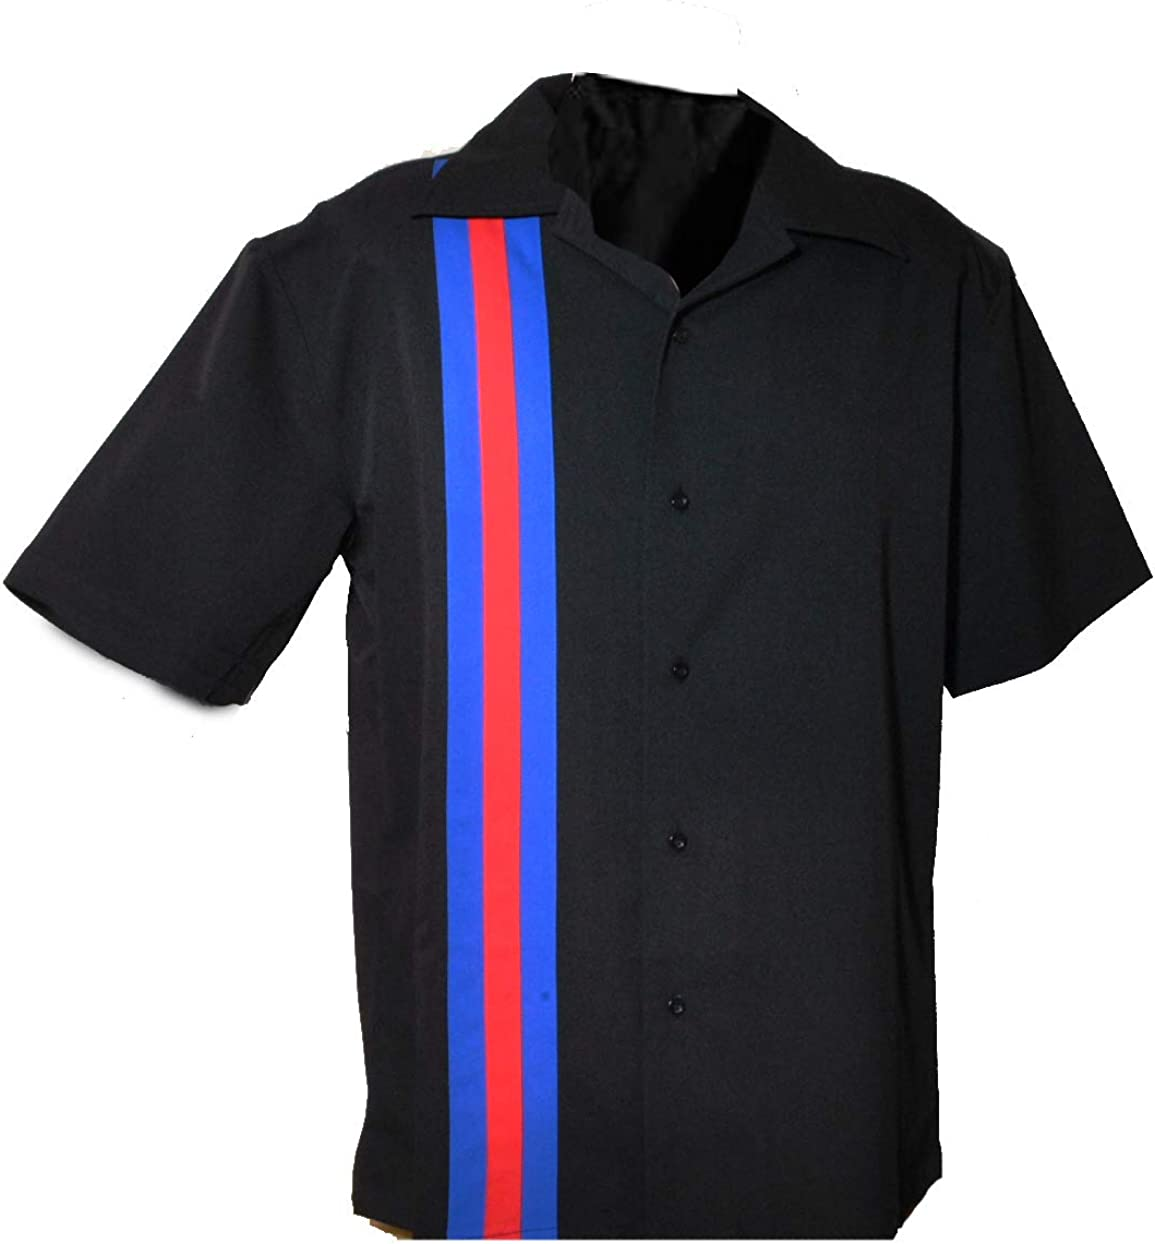 Designs by Max 55% Translated OFF Attila Mens Leisure Shirt Bowling Big 50's Style.